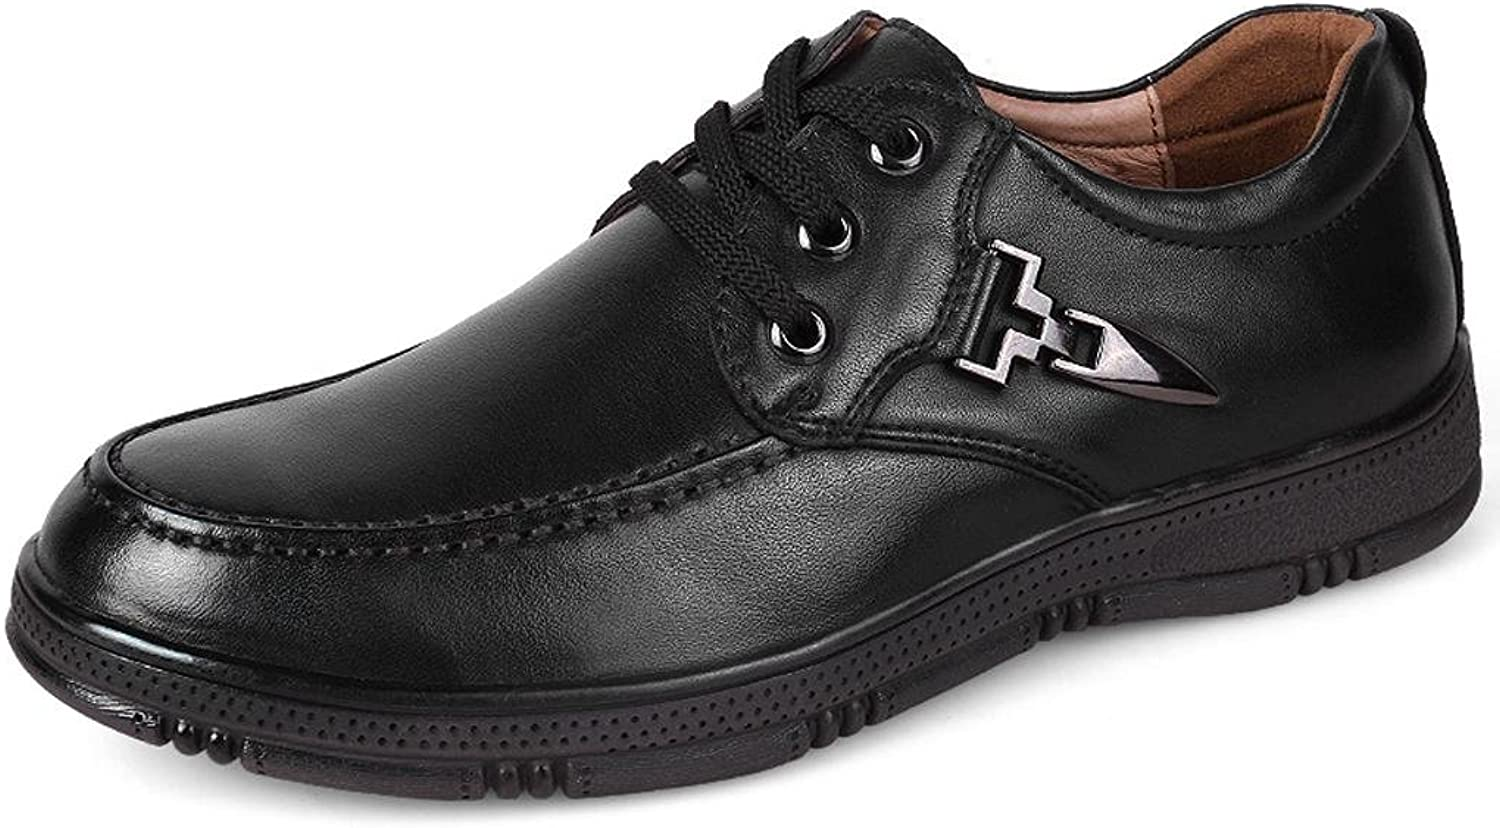 Men's Leather shoes Work shoes Outdoor shoes Large shoes